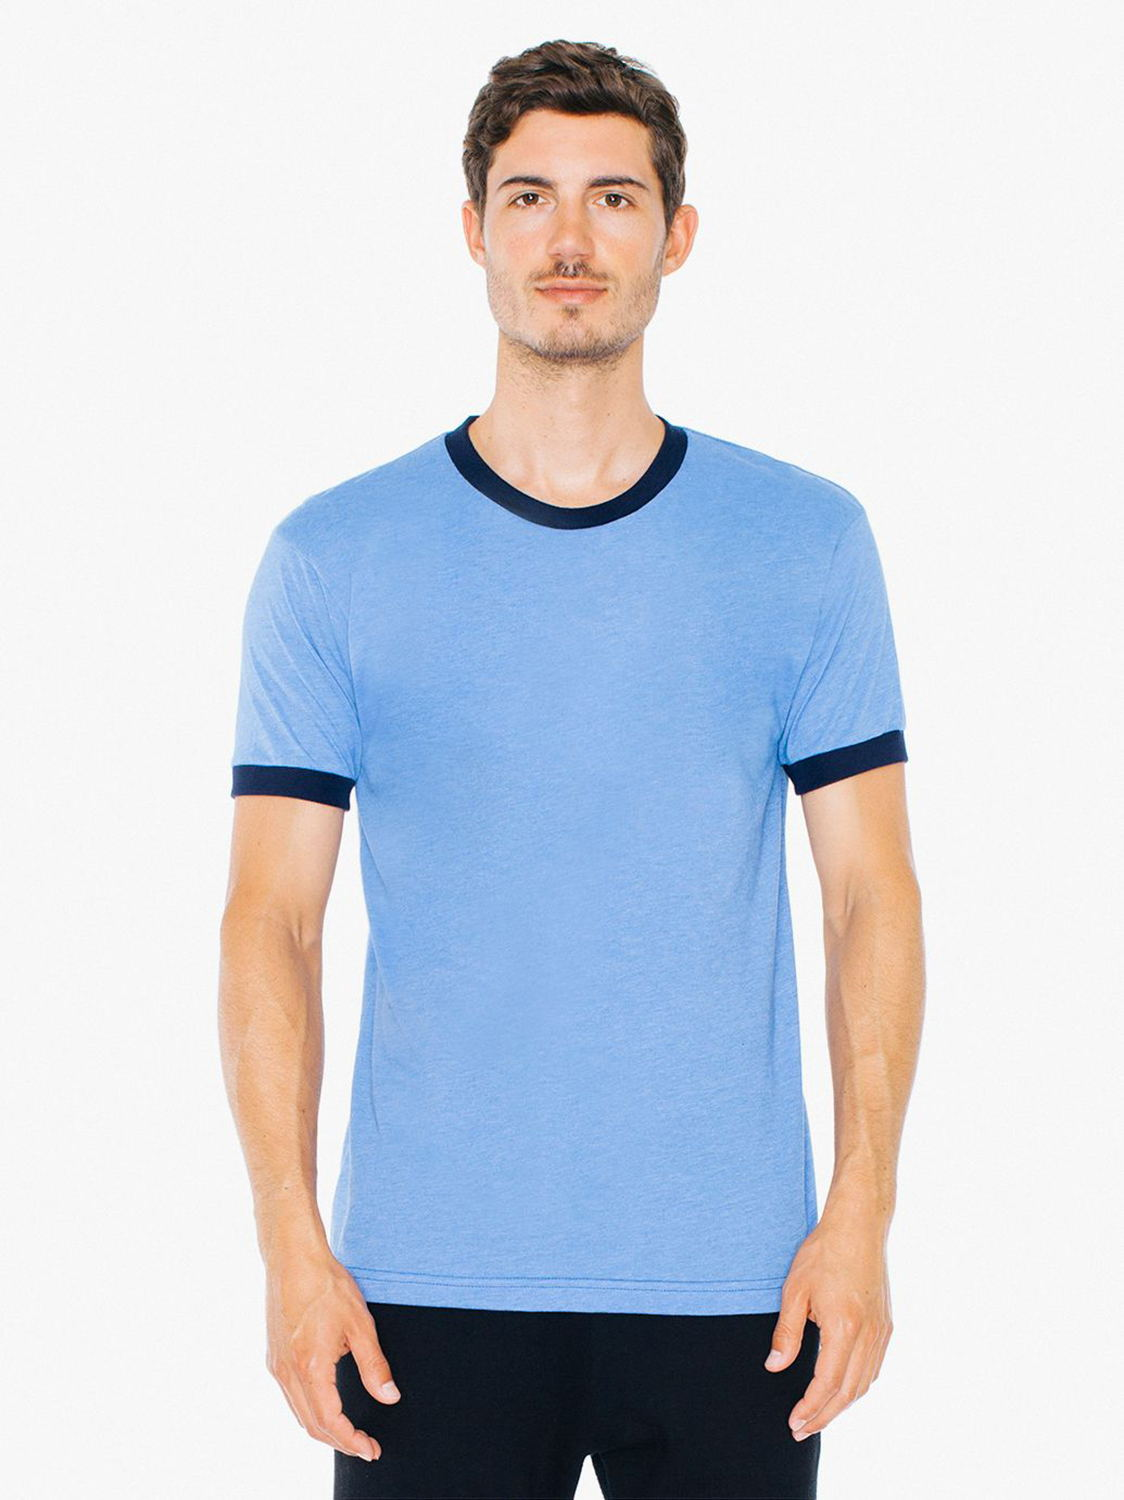 click to view Hth Lk Blue/ Nvy